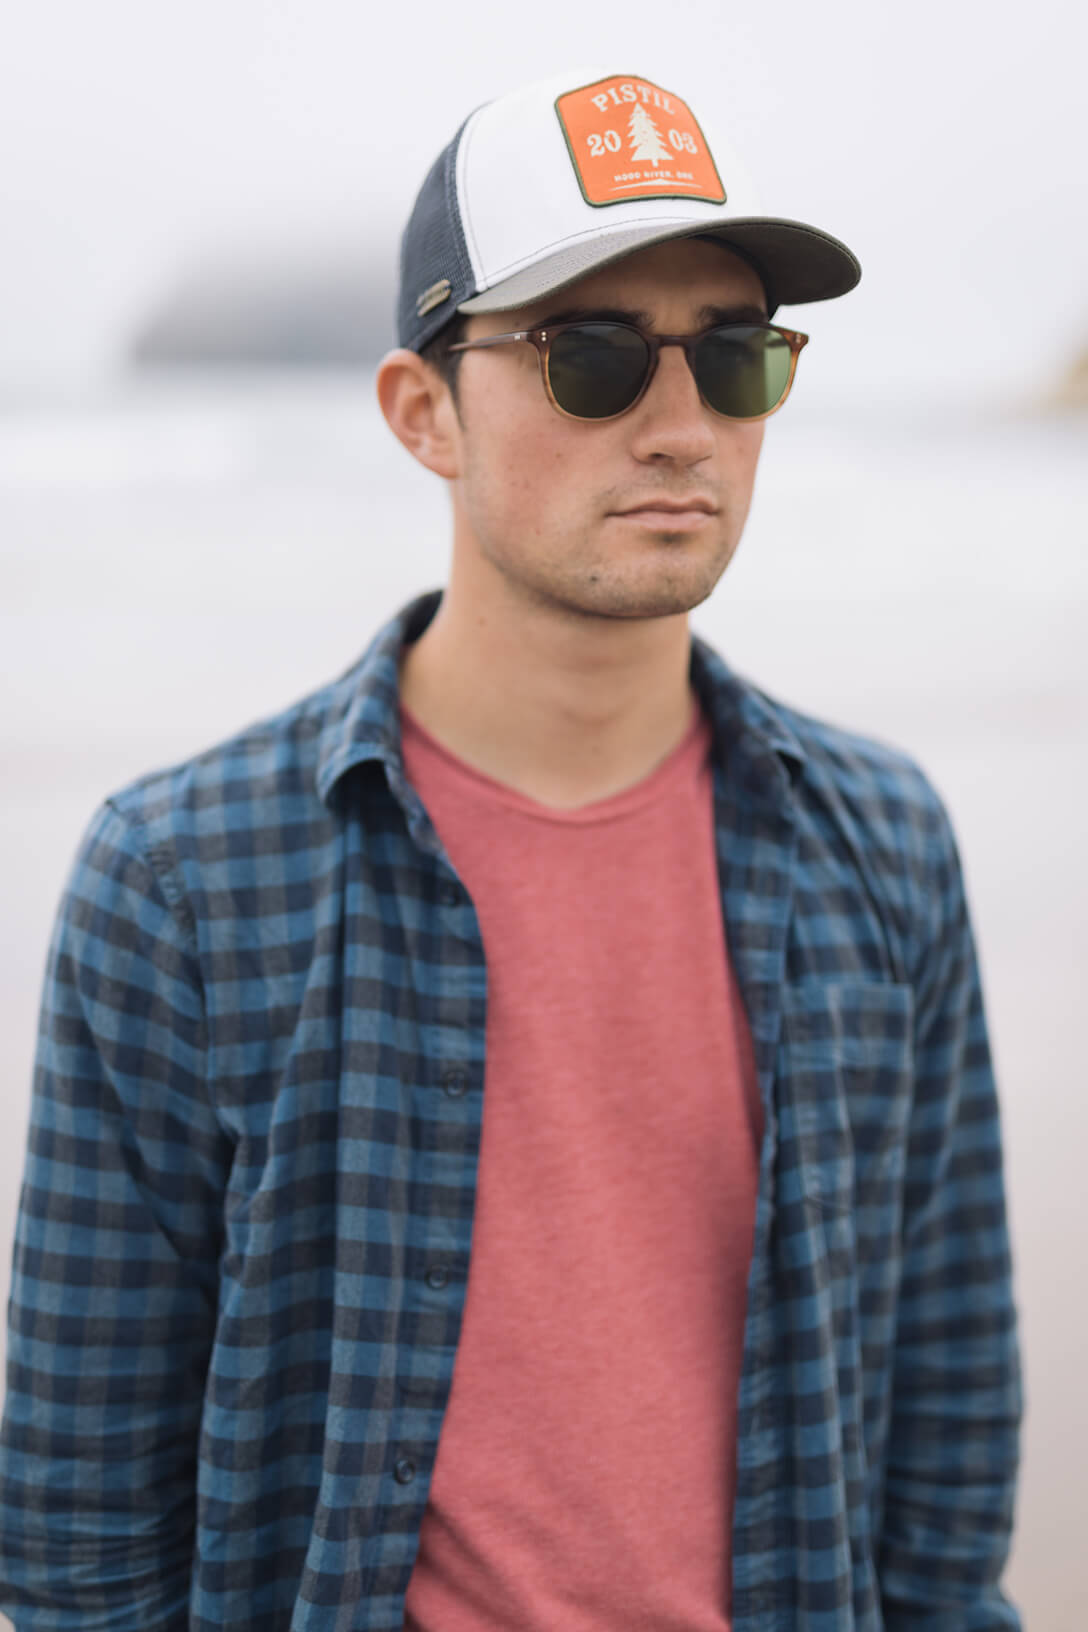 Man wearing Garrett Leight Round Milwood Sunglass in Matte Blonde Tortoise Fade with Pure G15 lenses